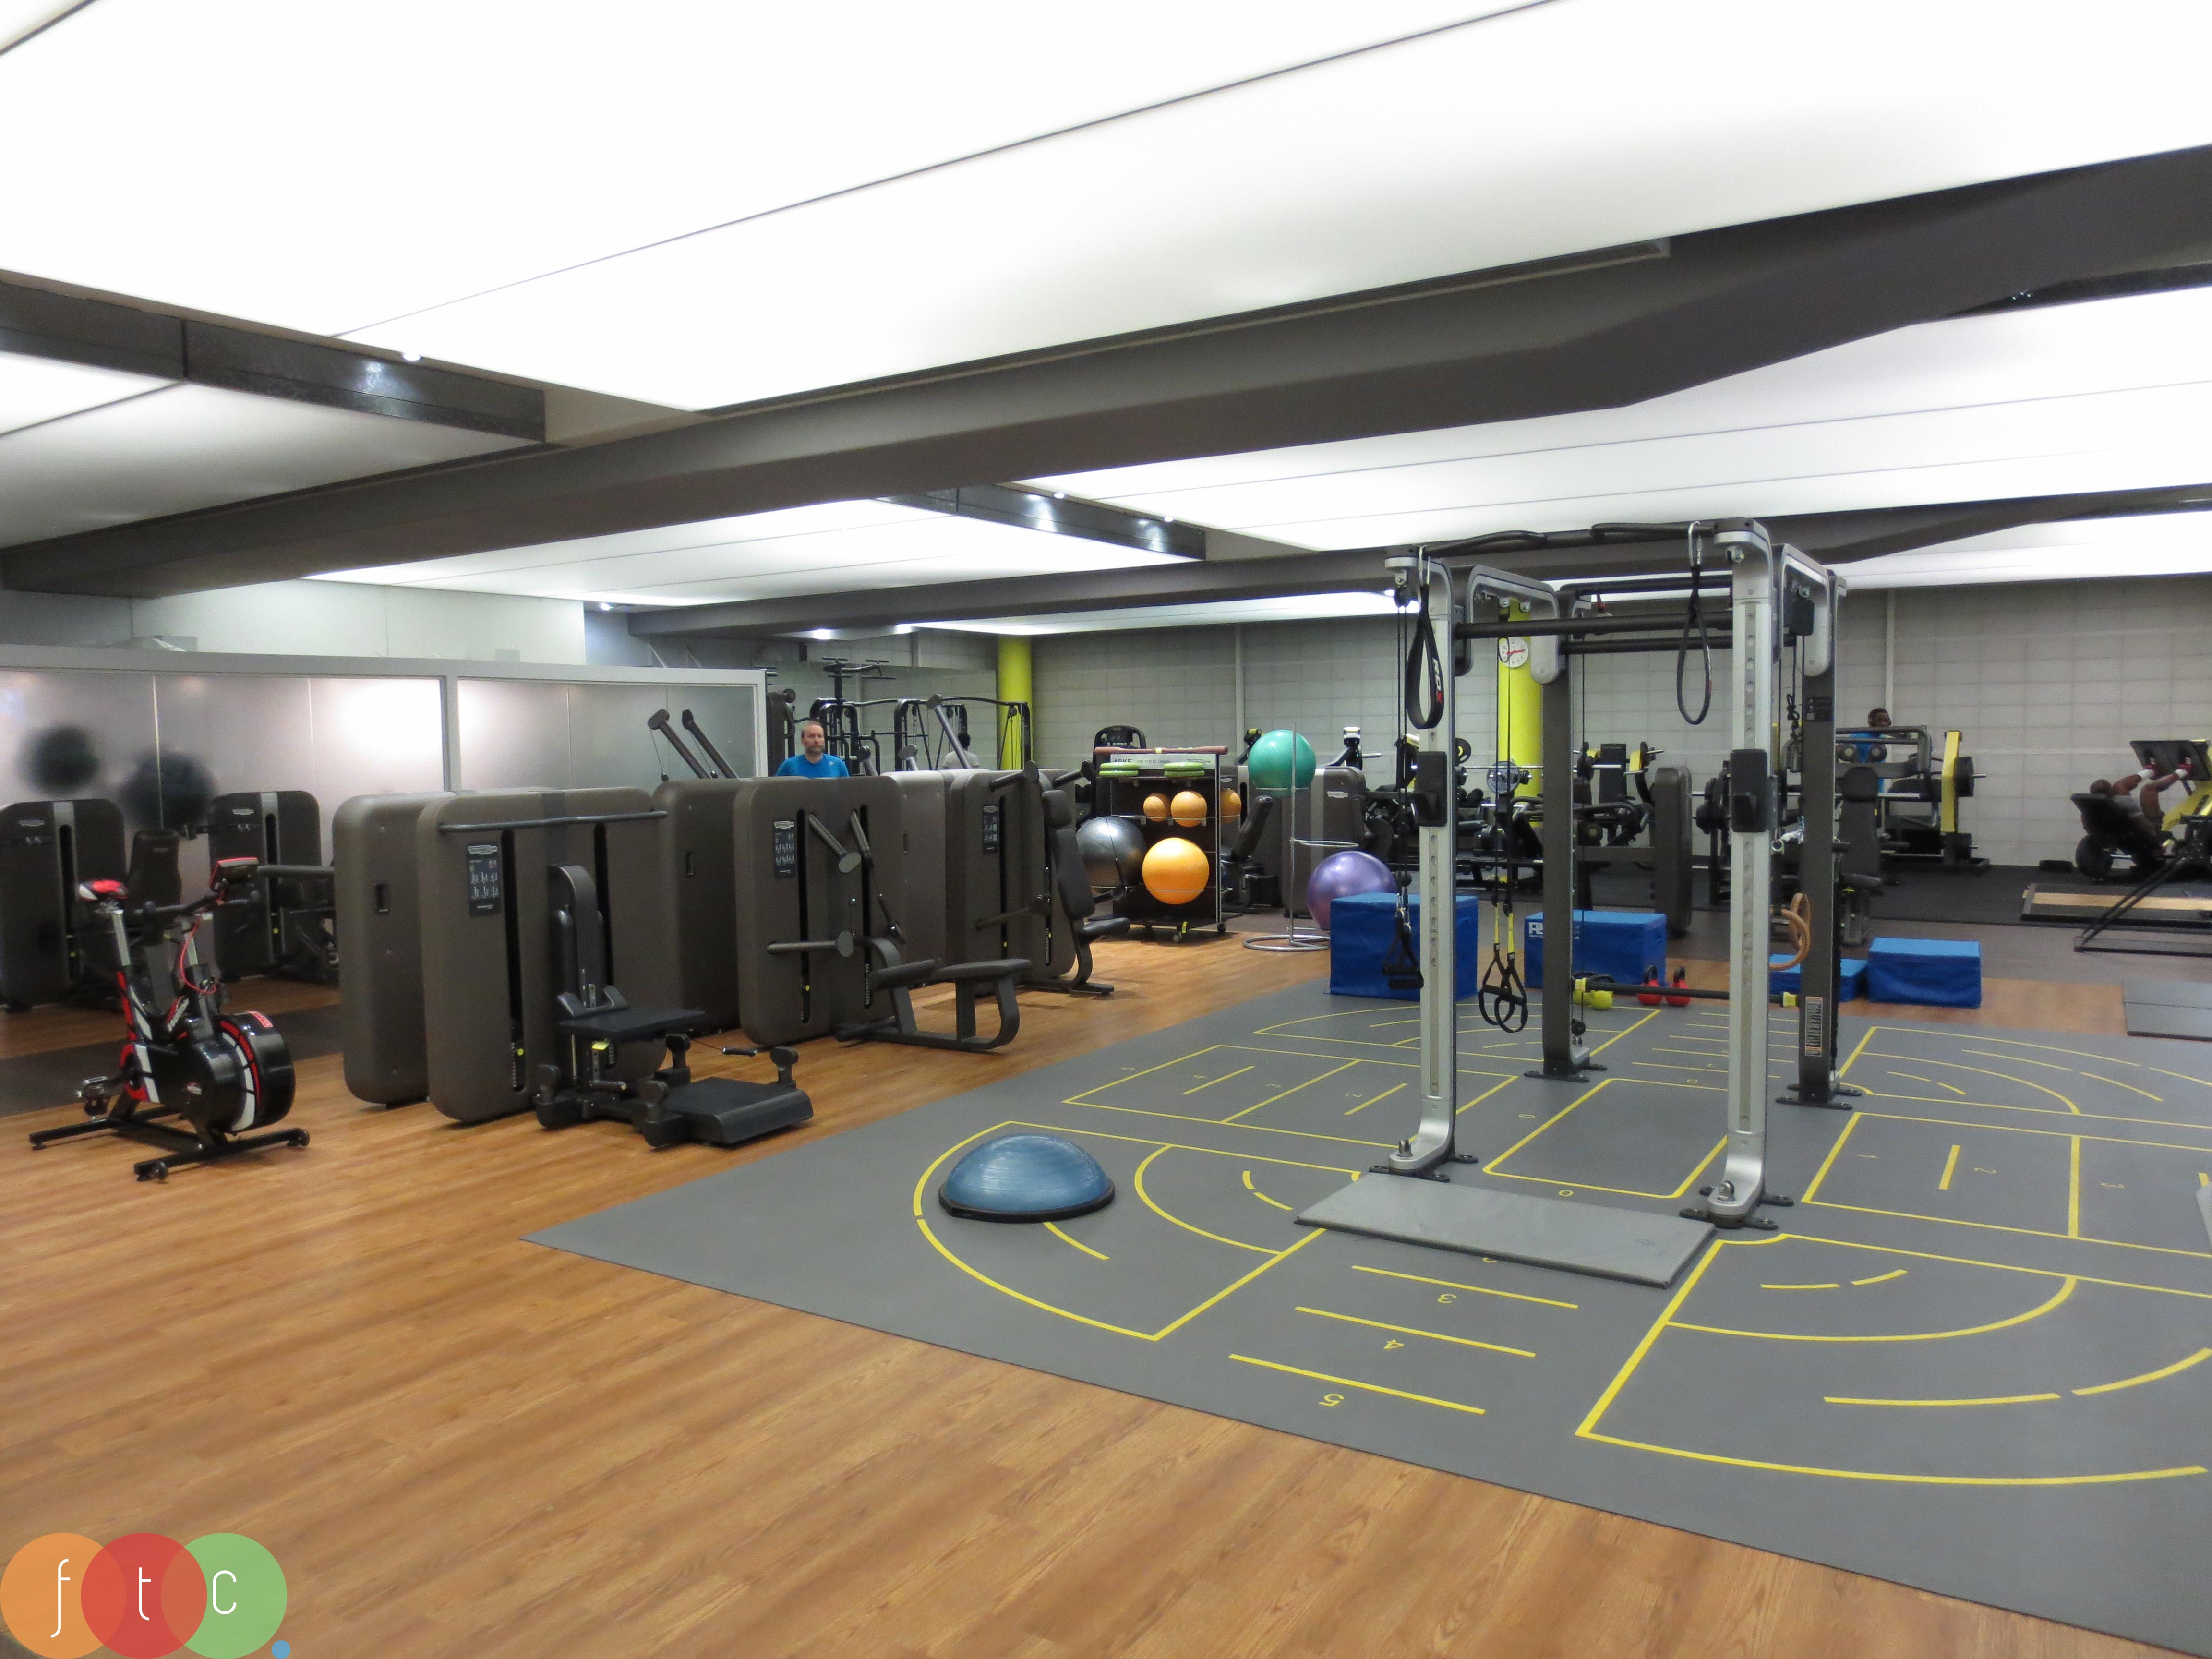 The true cost of setting up a gym fitcetera for Fitness gym